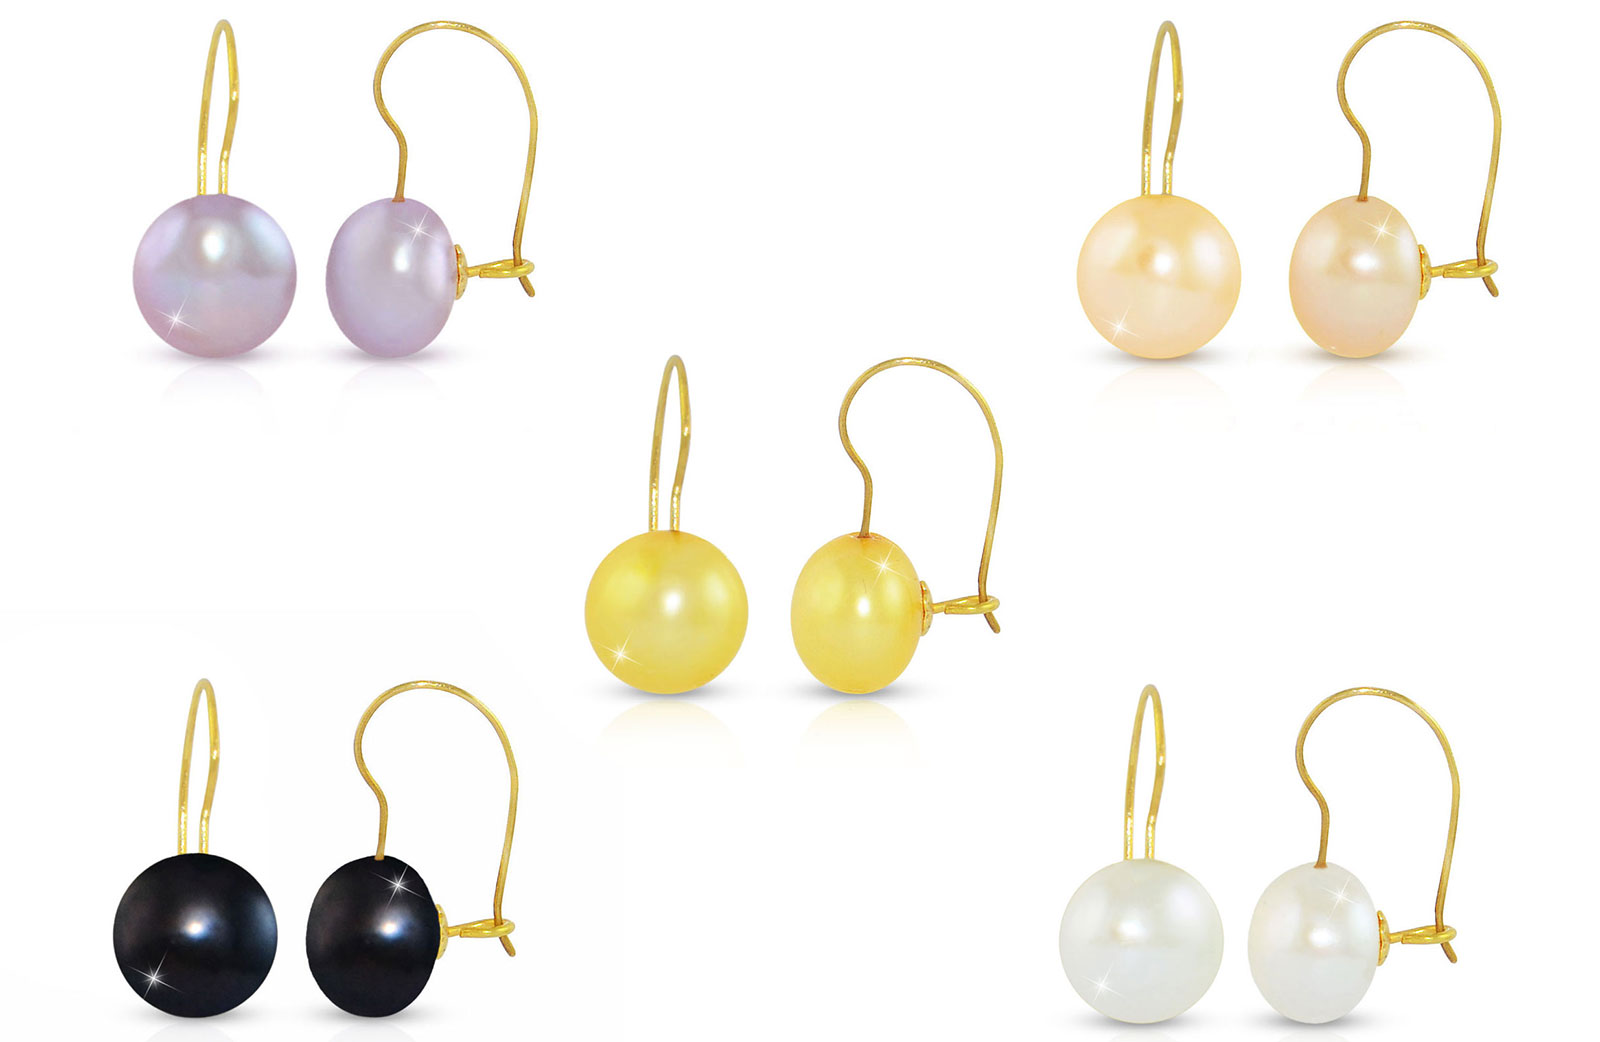 Vera Perla 10K Gold 7mm Genuine Button Pearls 5 Pairs Earrings